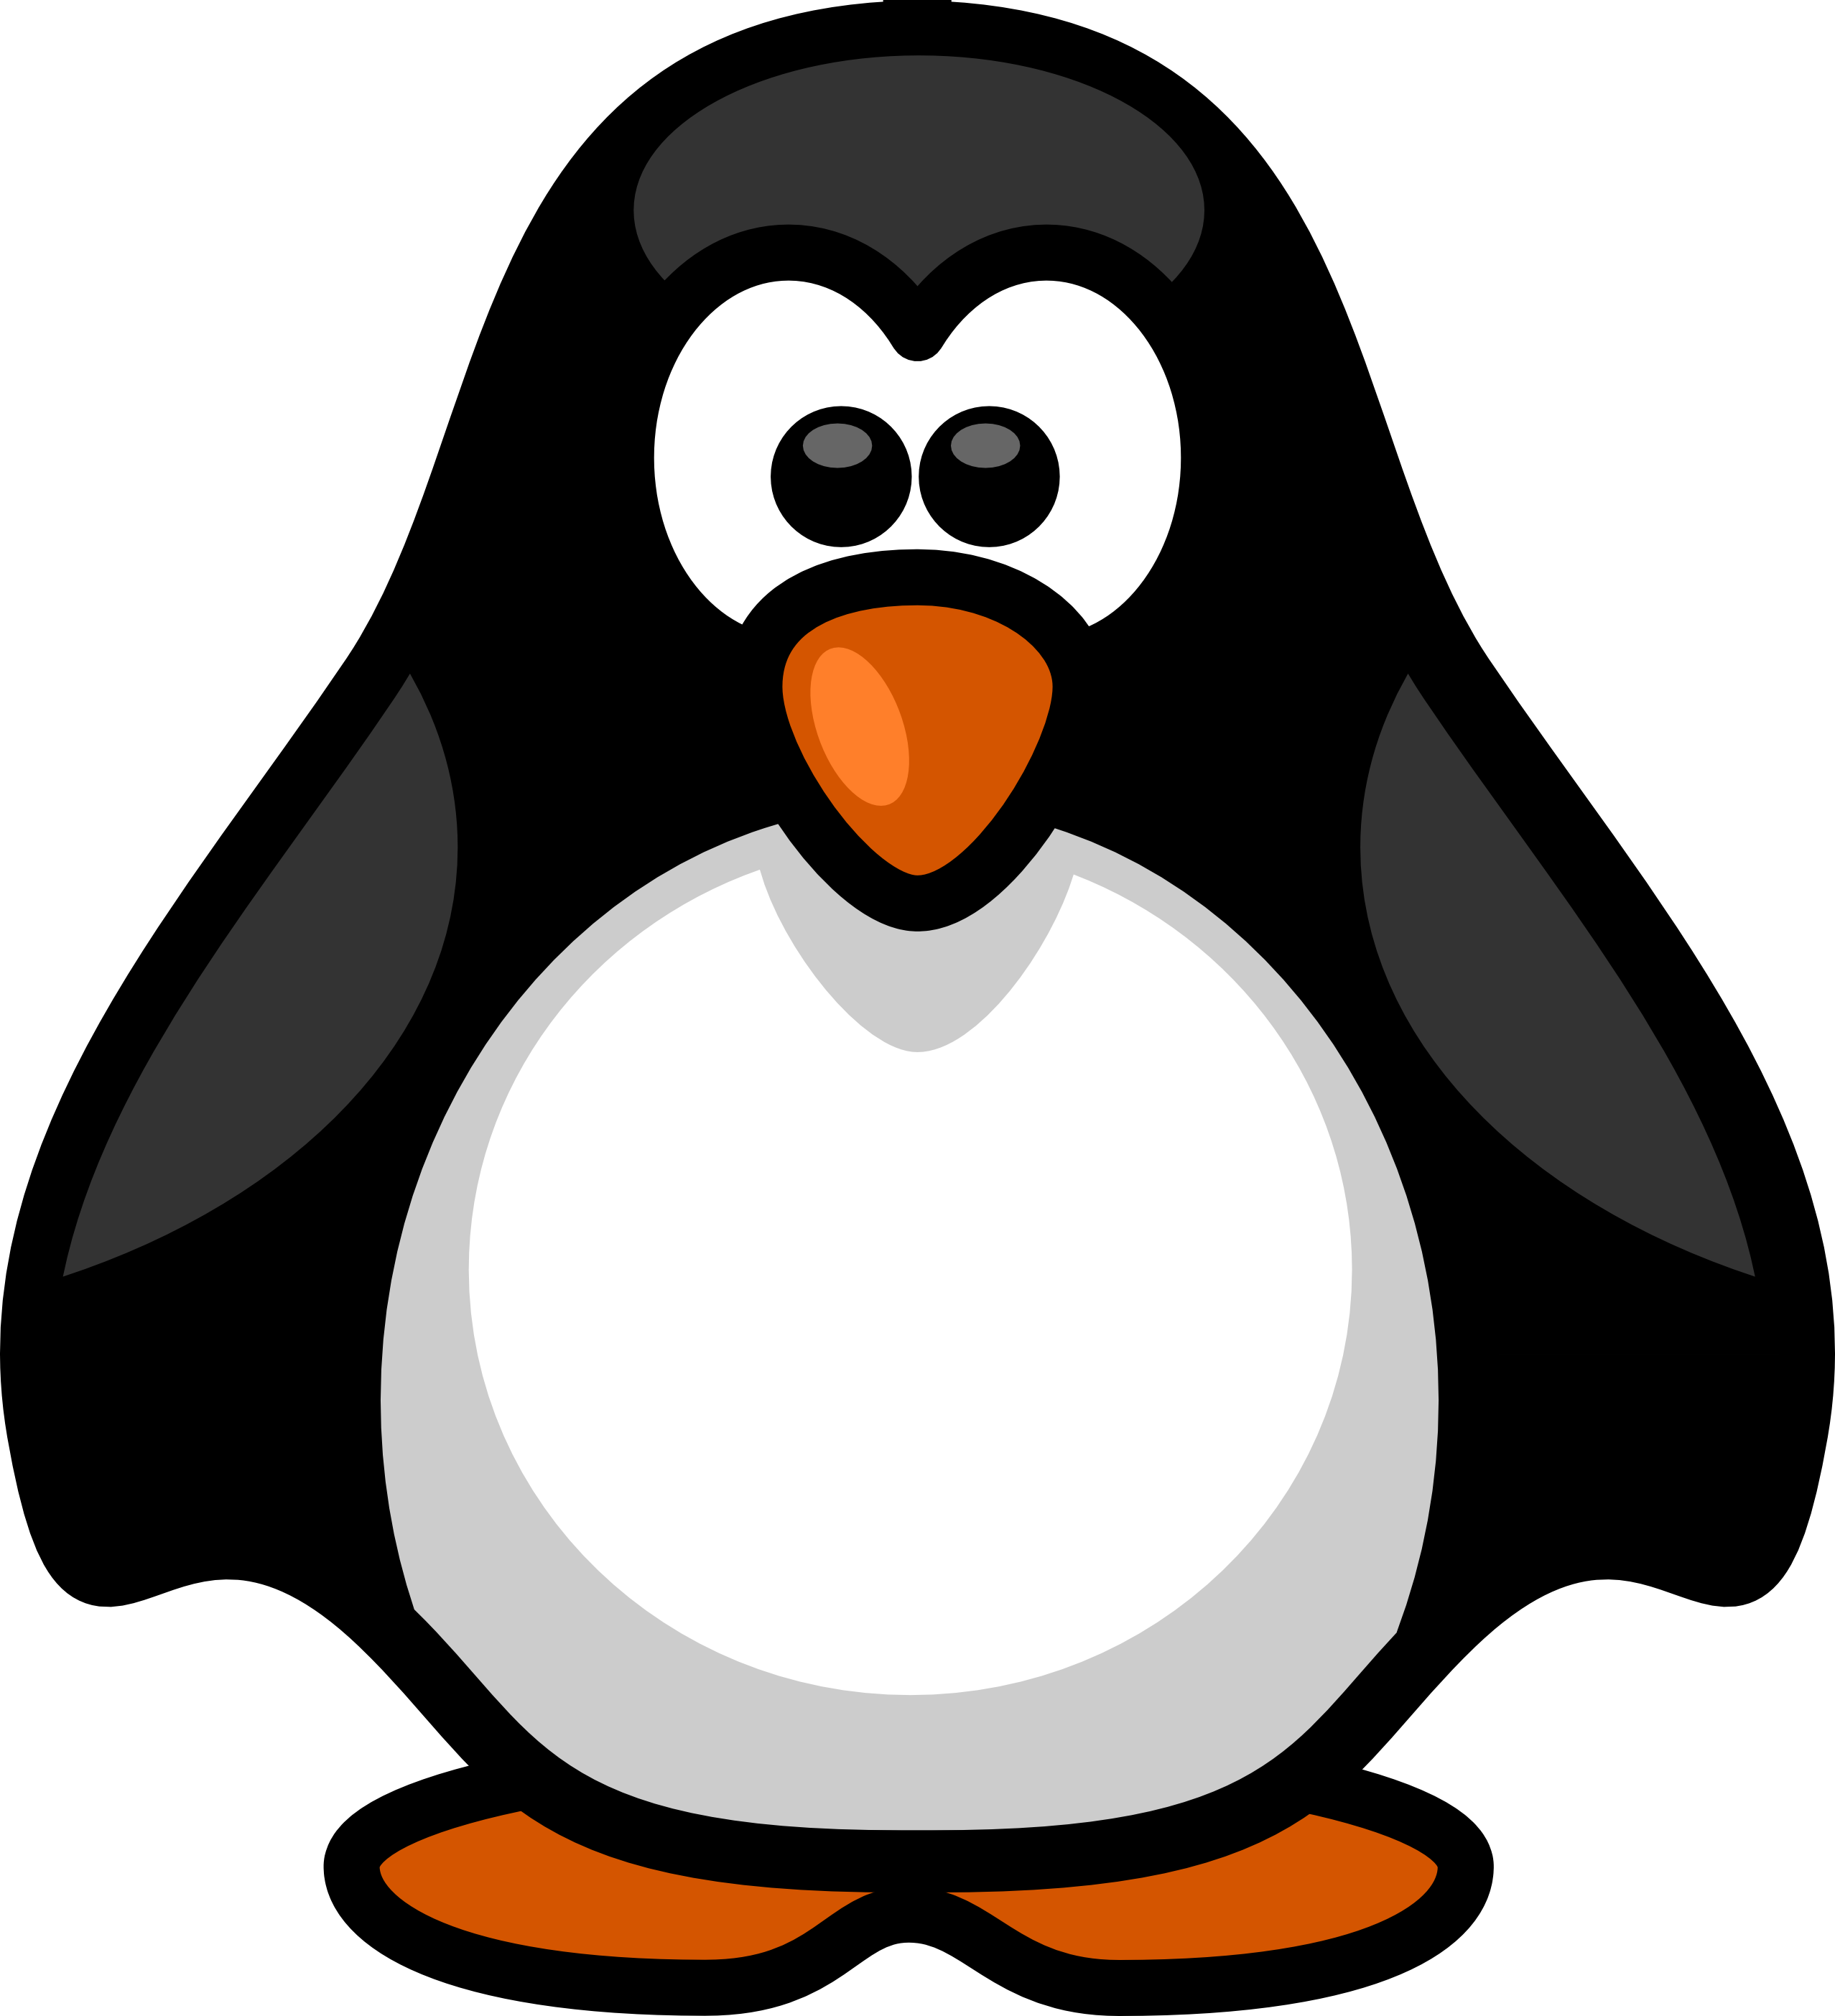 Free Penguin Clipart Transparent Background, Download Free.